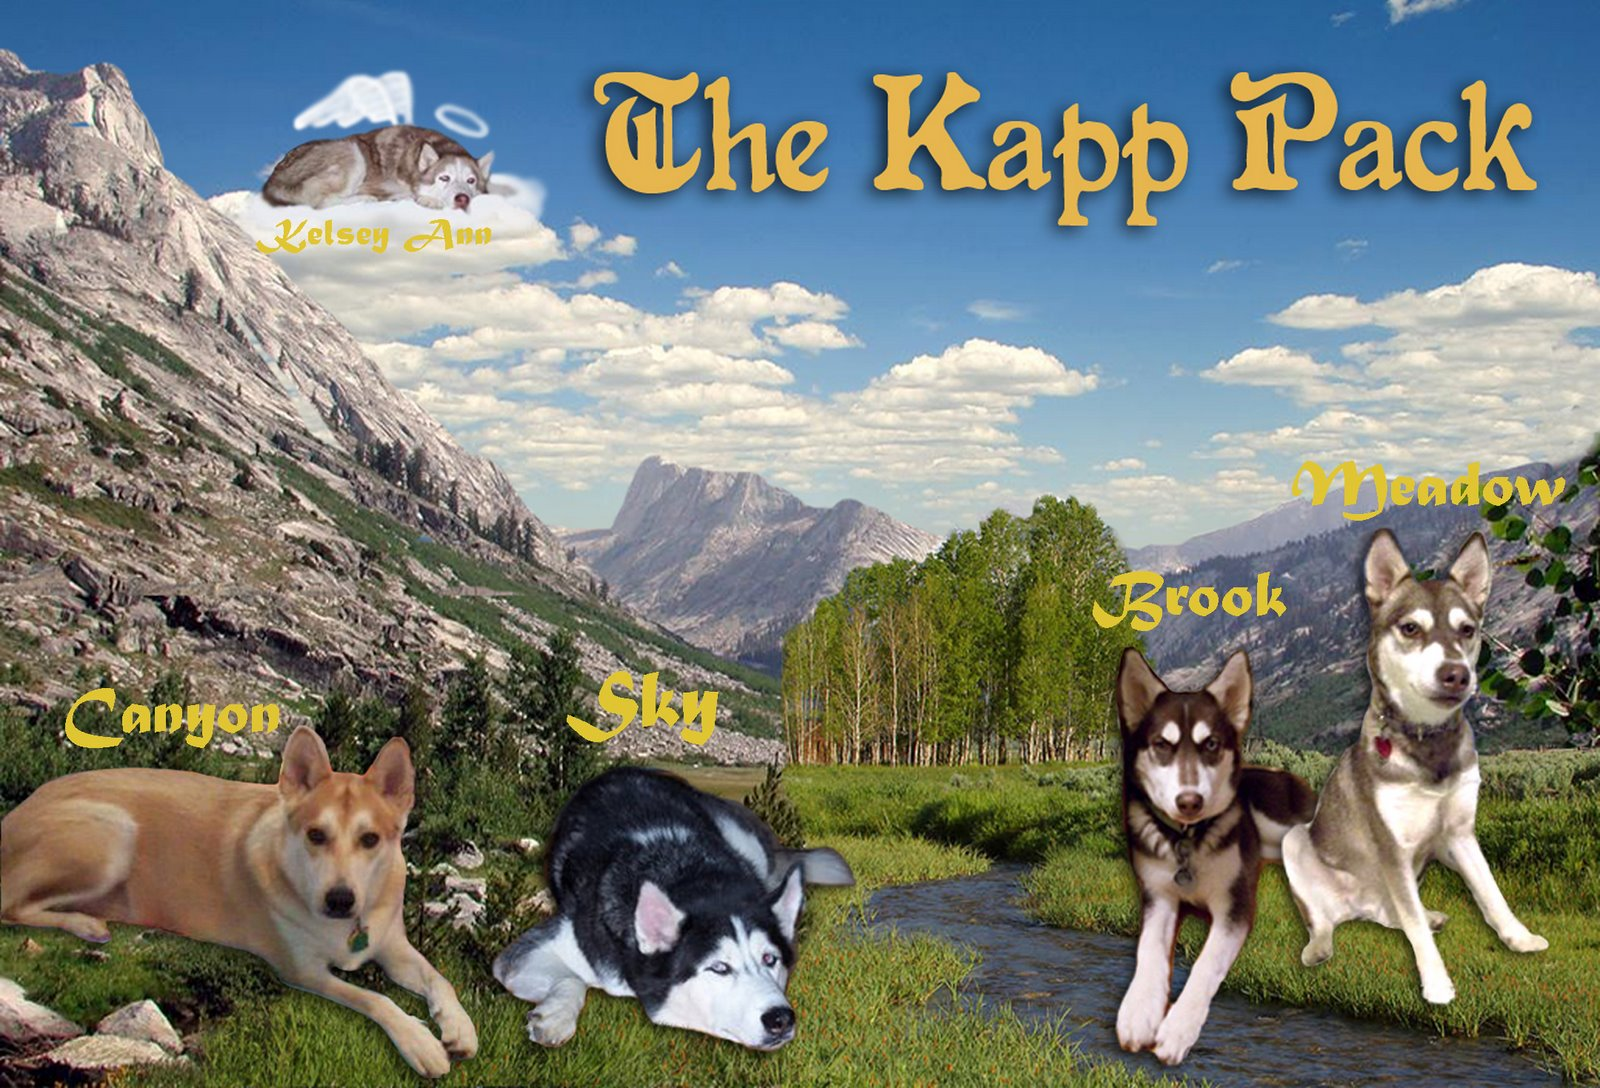 The Kapp Pack